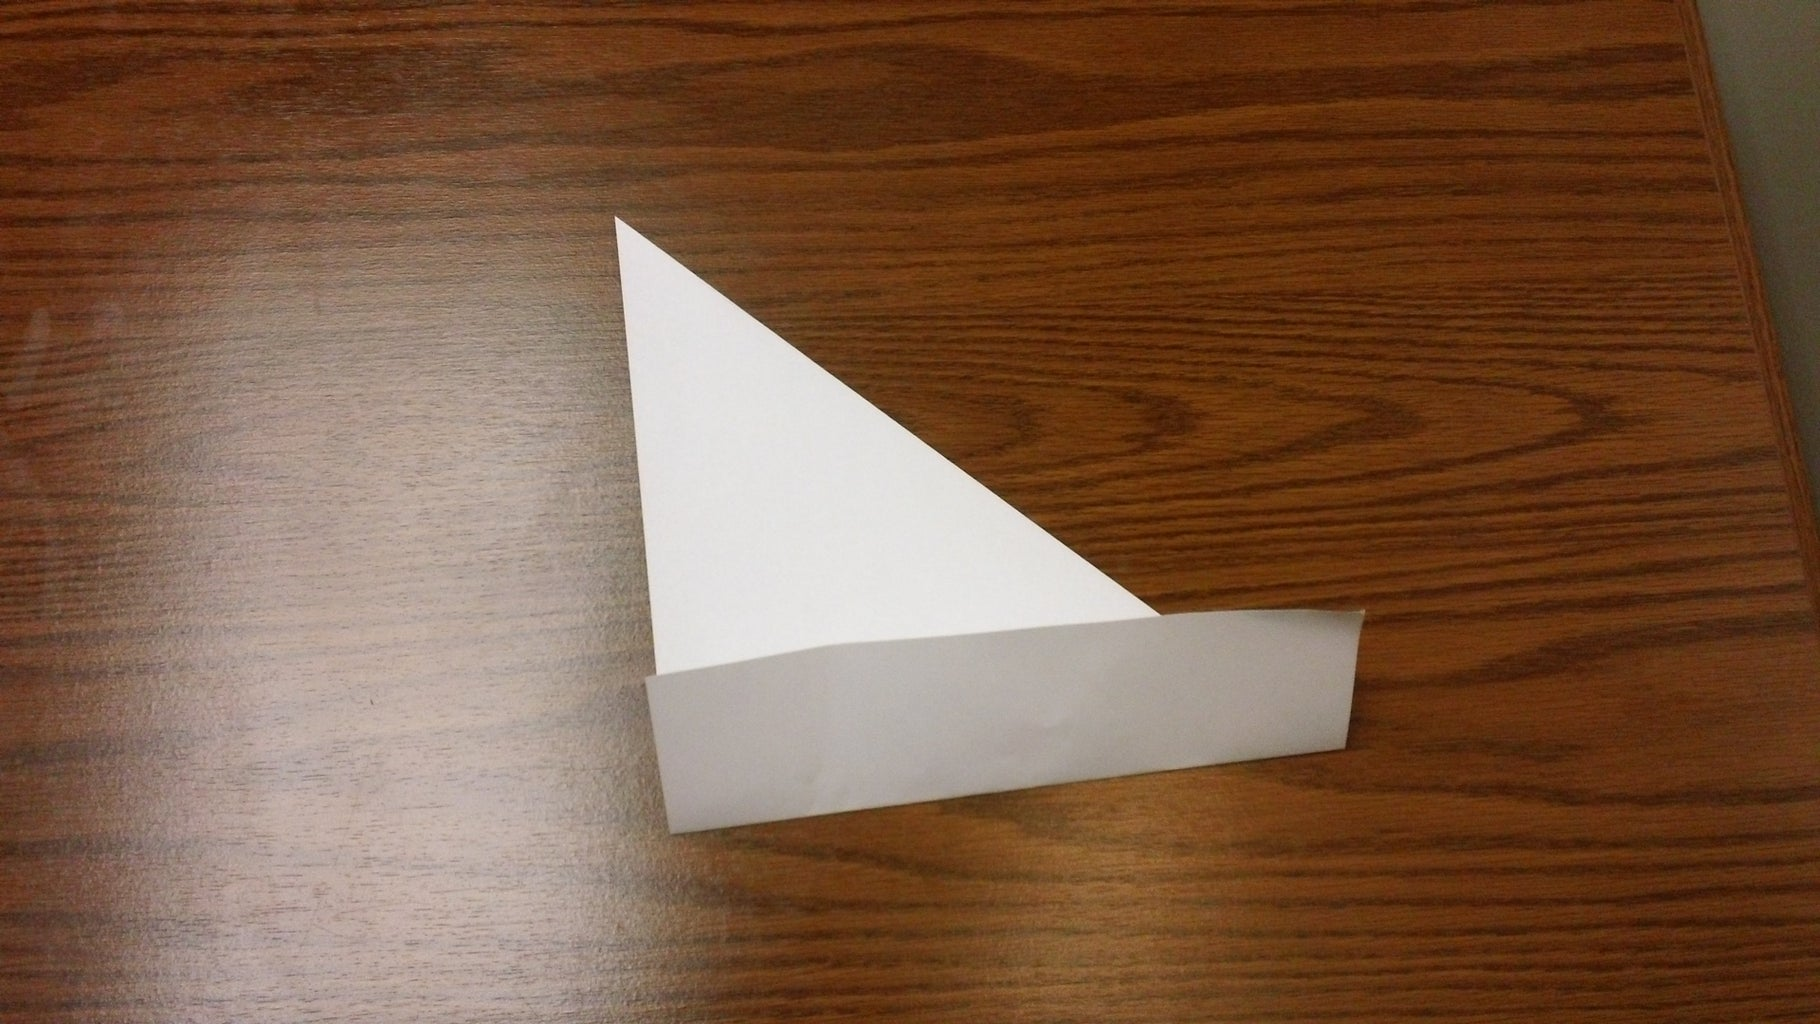 Make a Square and Cut